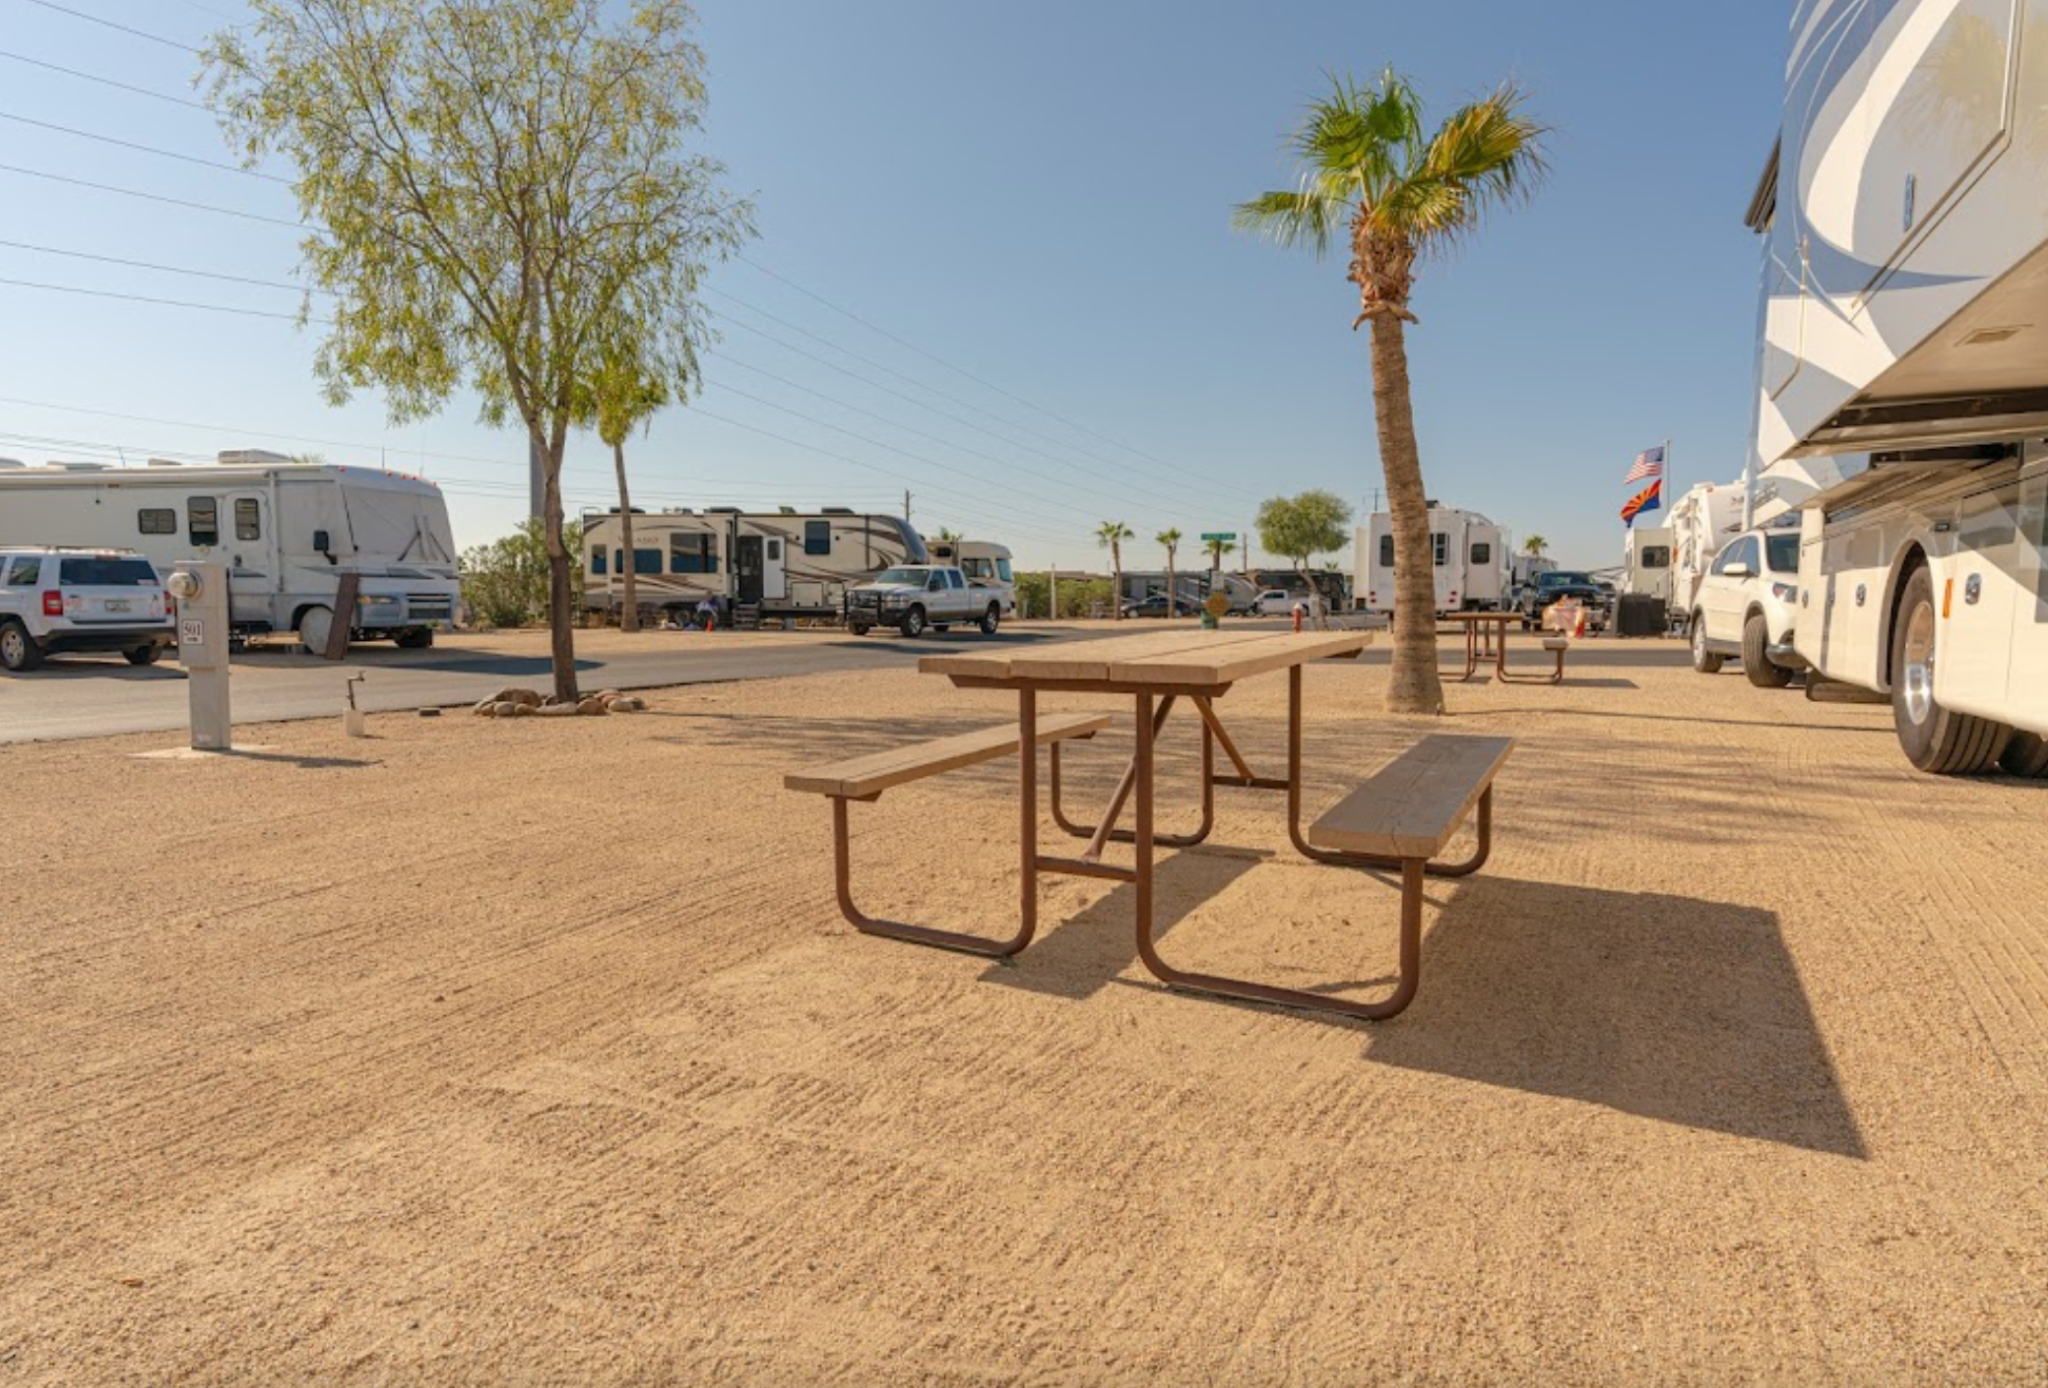 RV resort with picnic table, RVs, and palm trees.